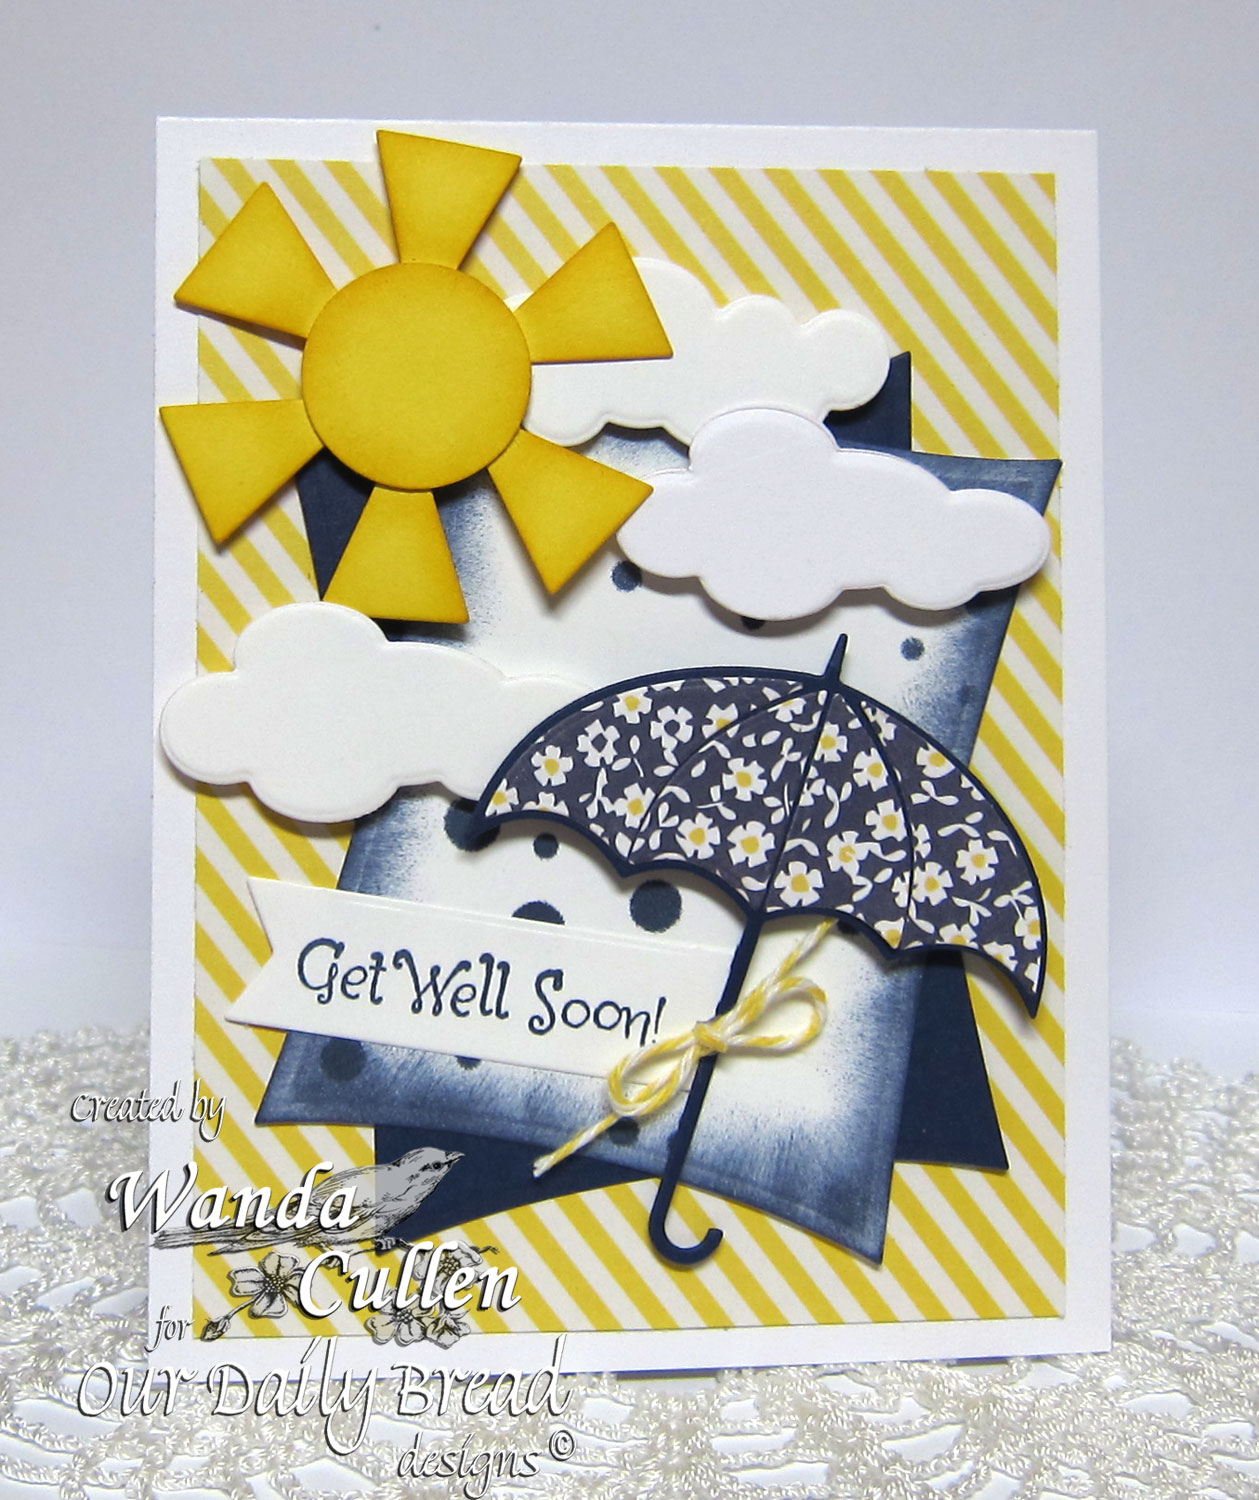 Stamps - Our Daily Bread Designs Shower of Blessings, ODBD Custom Dies: Umbrellas, Clouds and Raindrops, Pennants